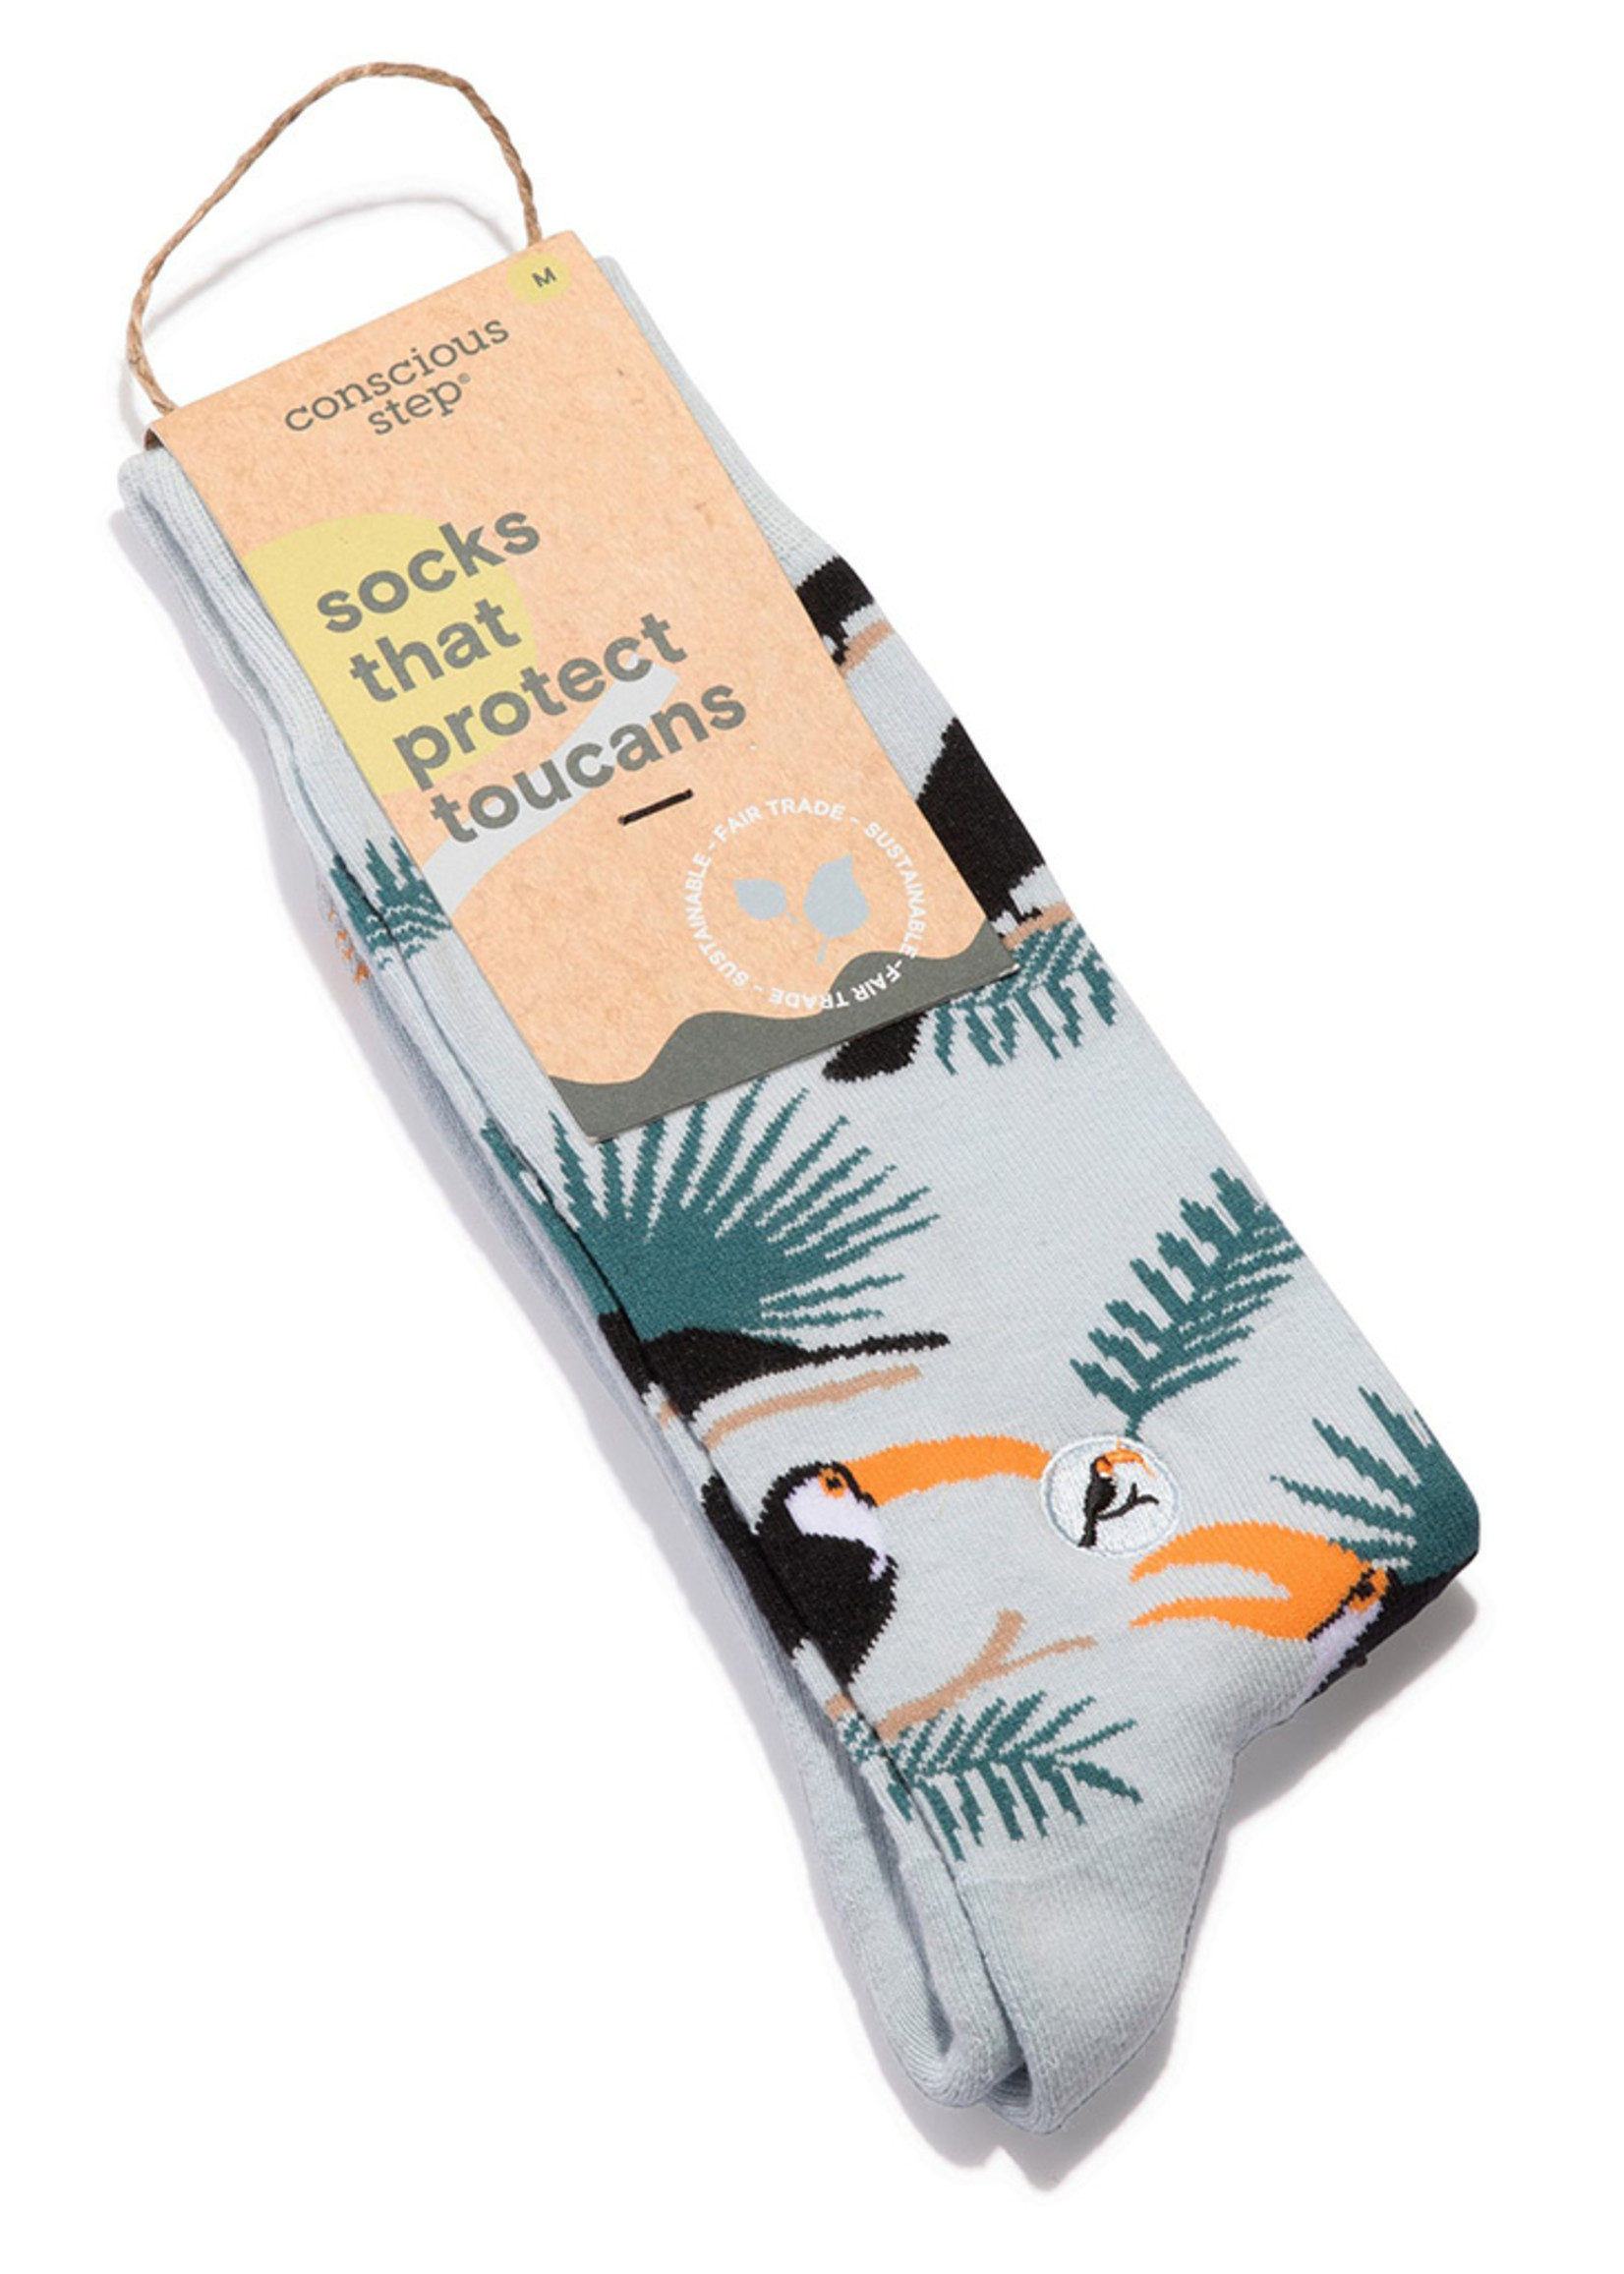 Conscious Step Women's Socks that Protect Toucans